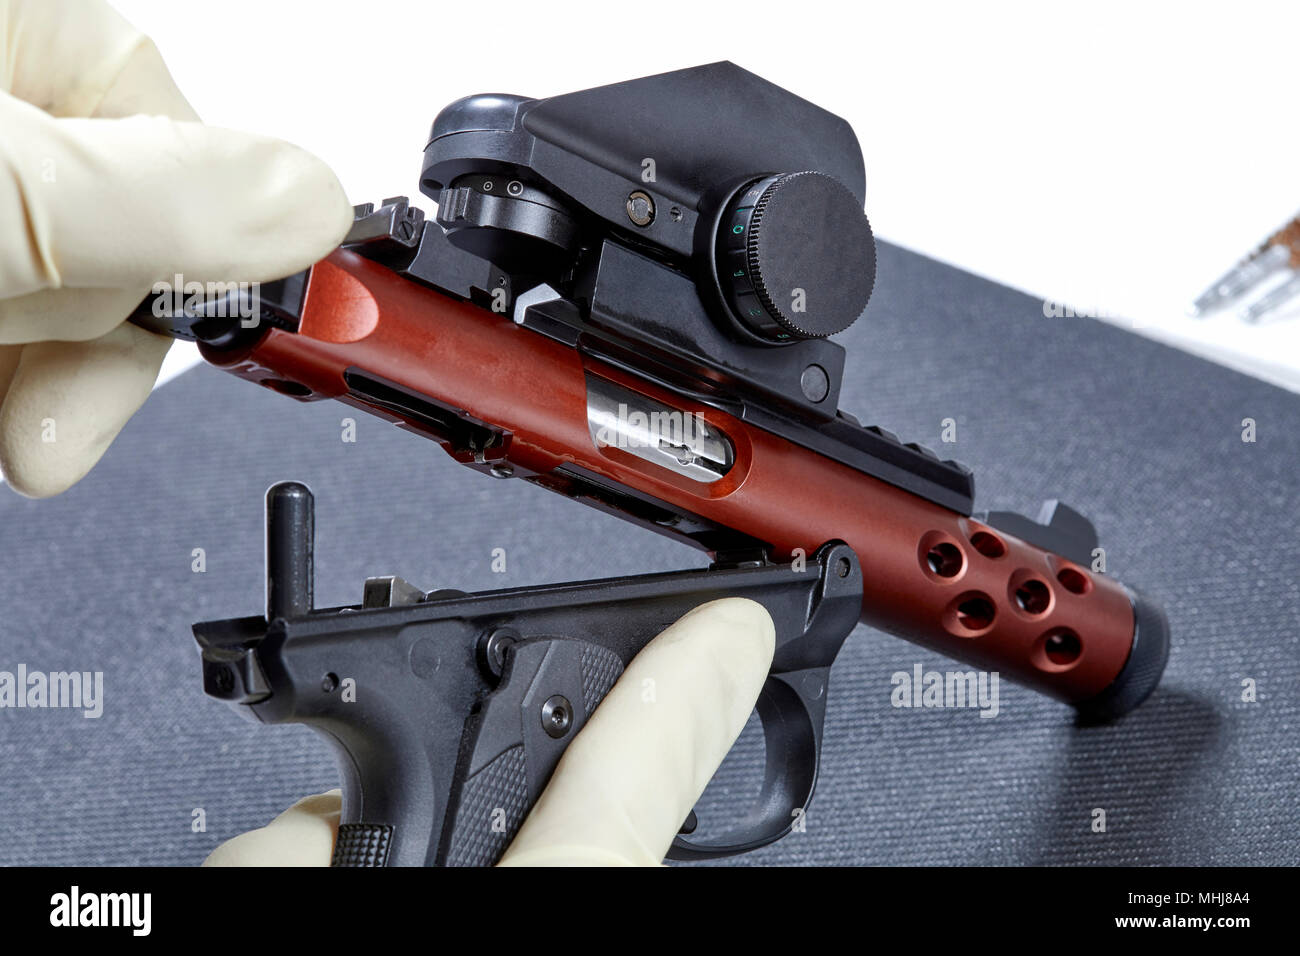 Gloved hands taking apart a 22 pistol in preparation to cleaning it - Stock Image